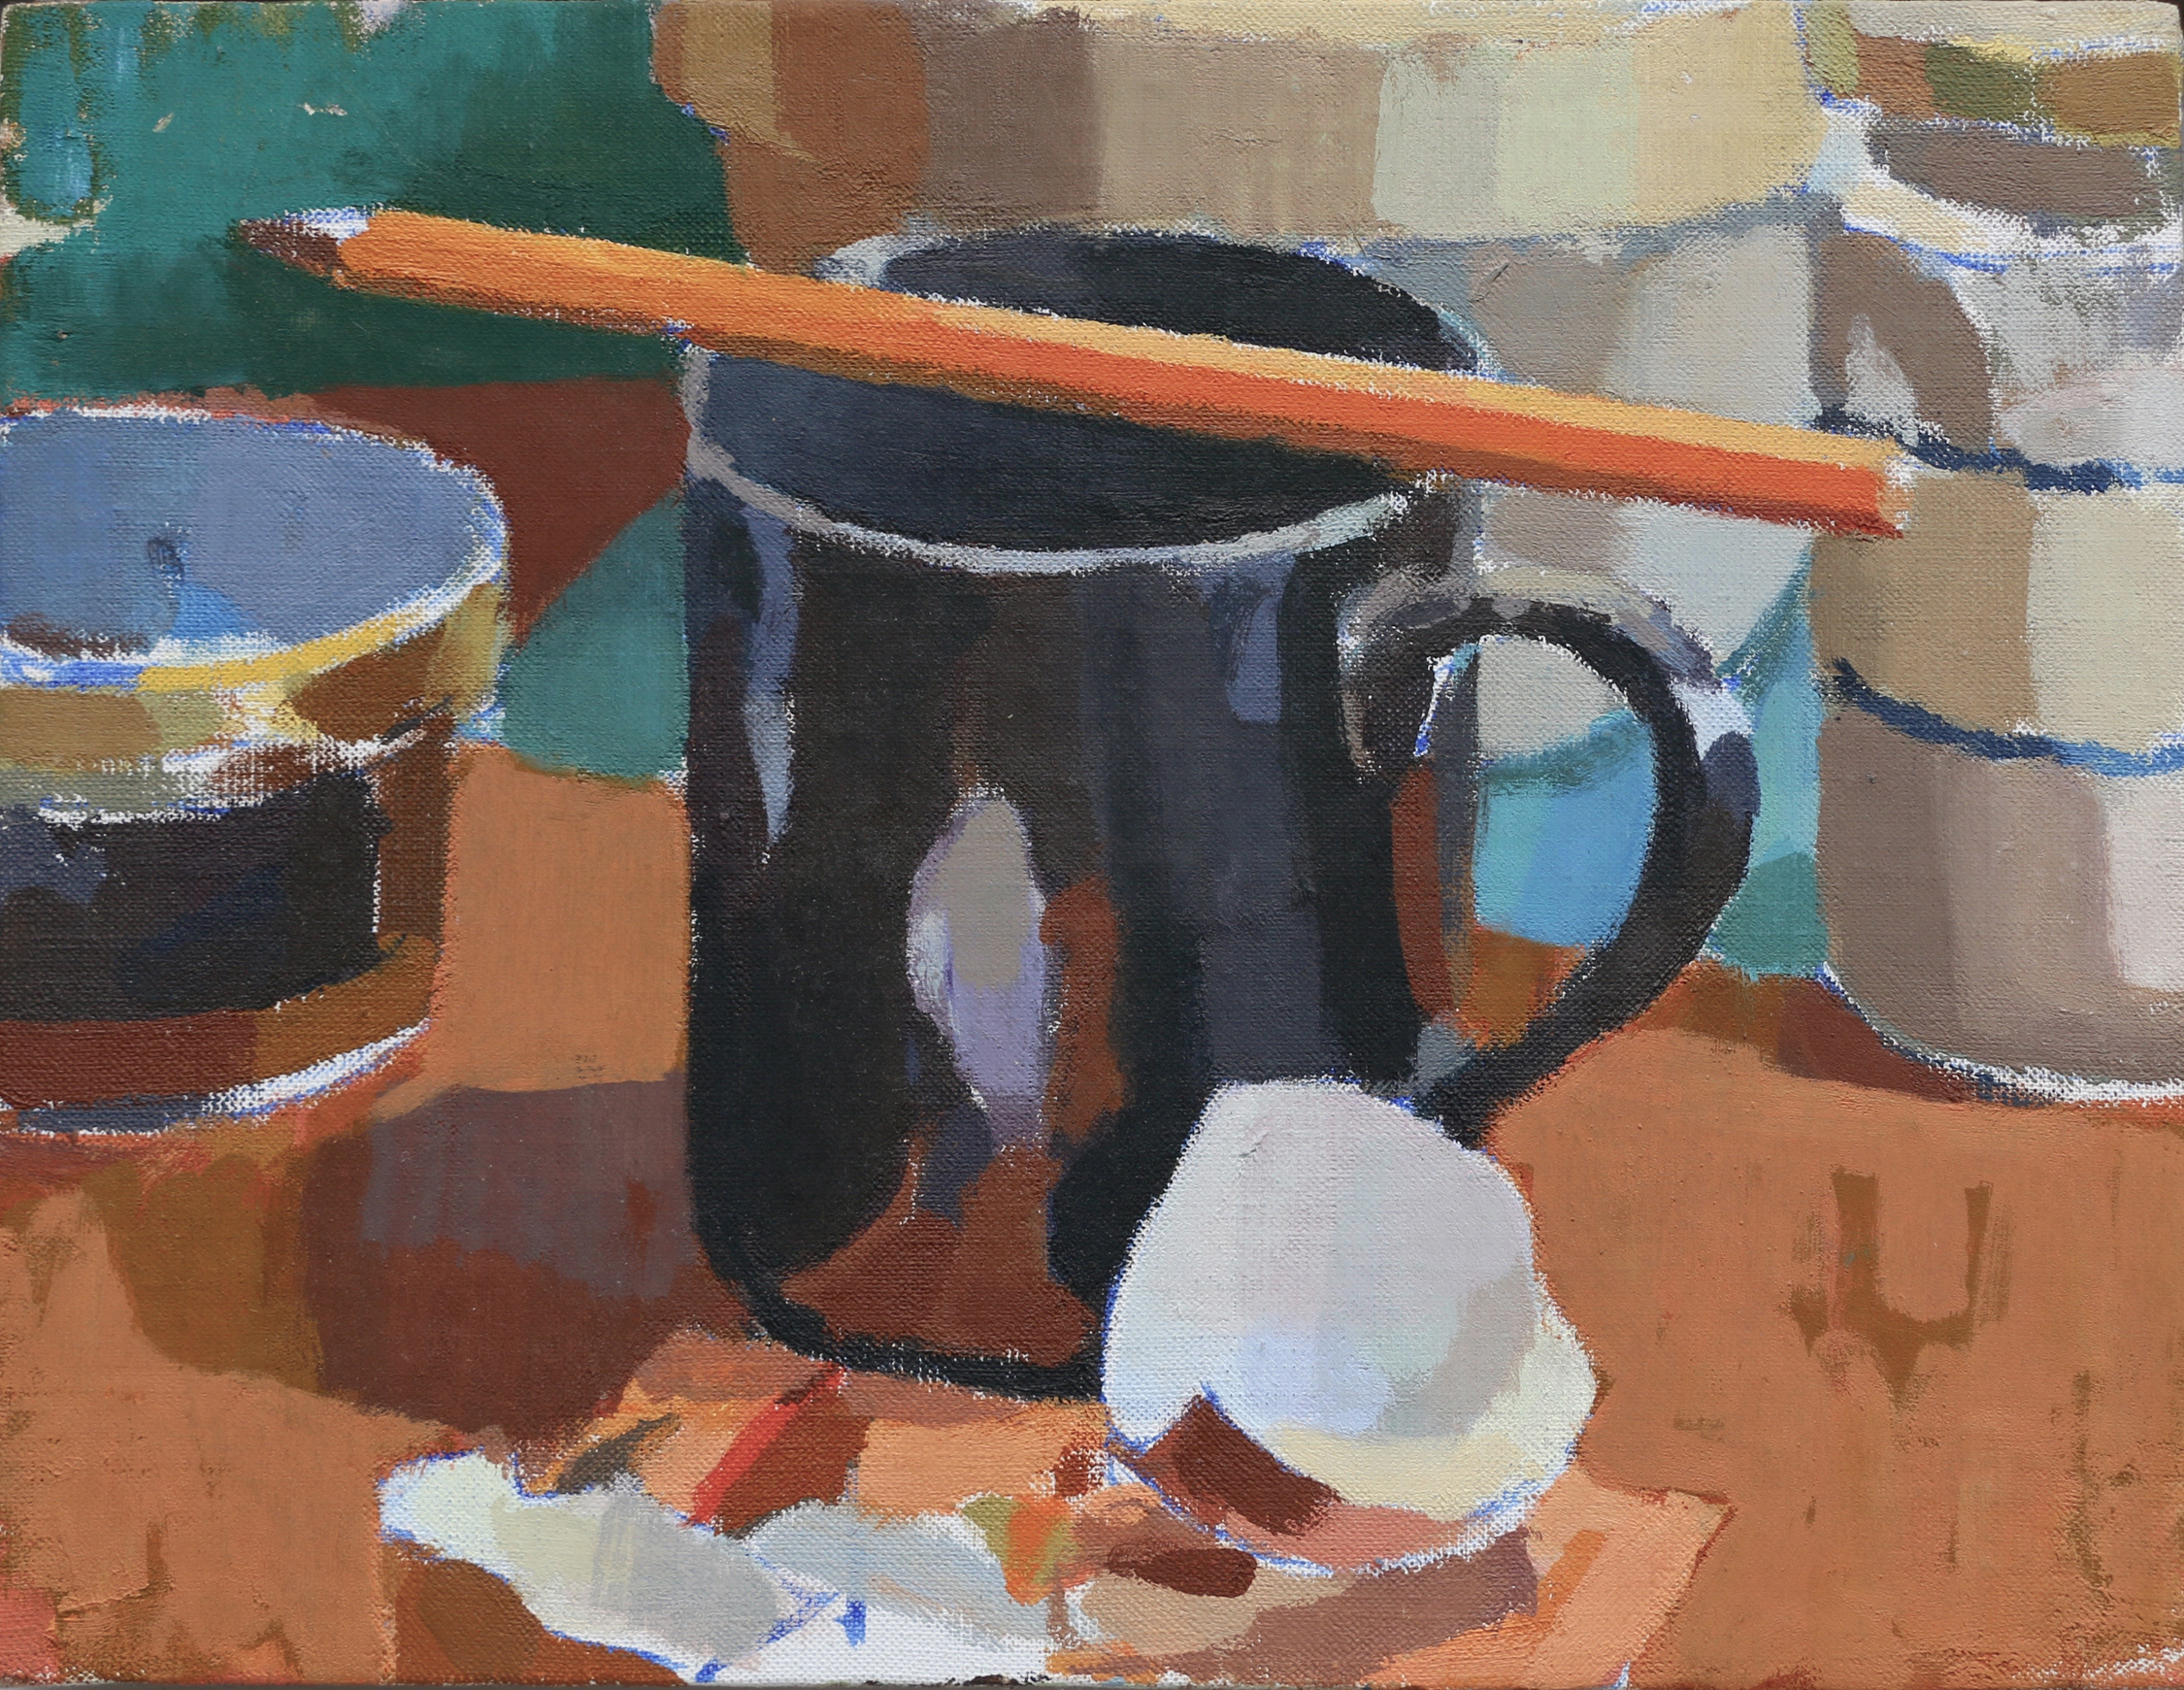 Black mug and Pencil  Oil on Canvas  10 x 8 inches